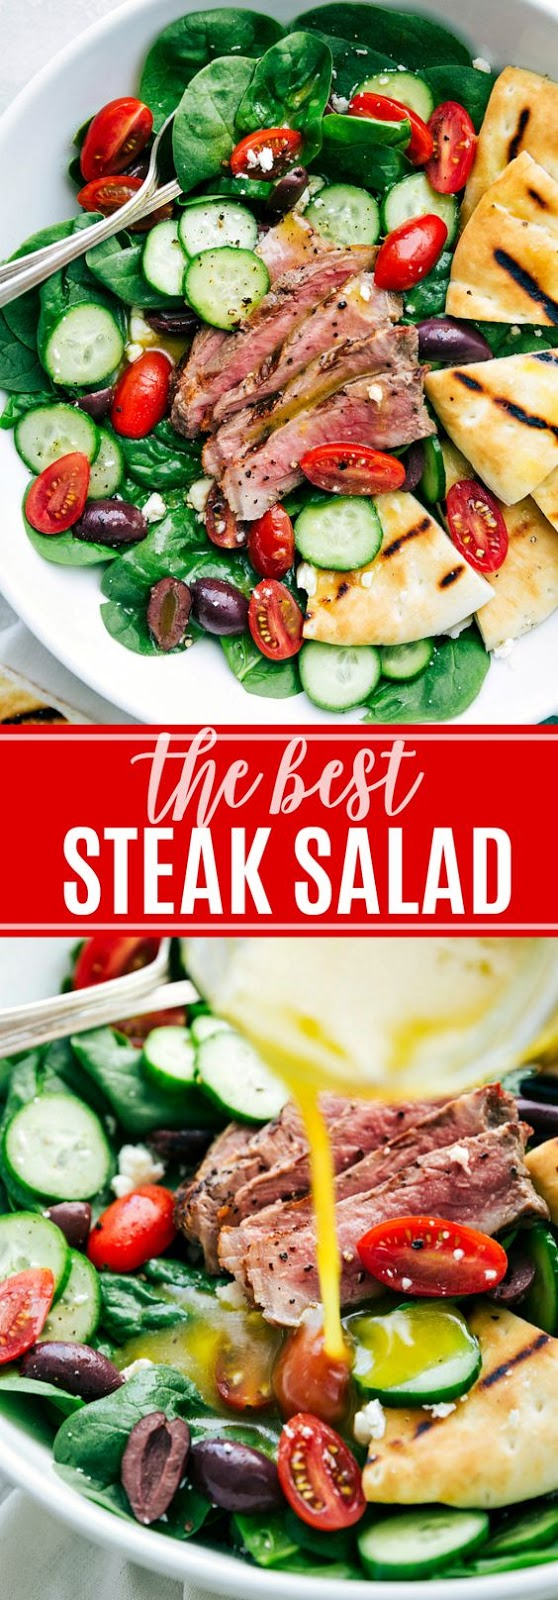 The BEST Steak Salad